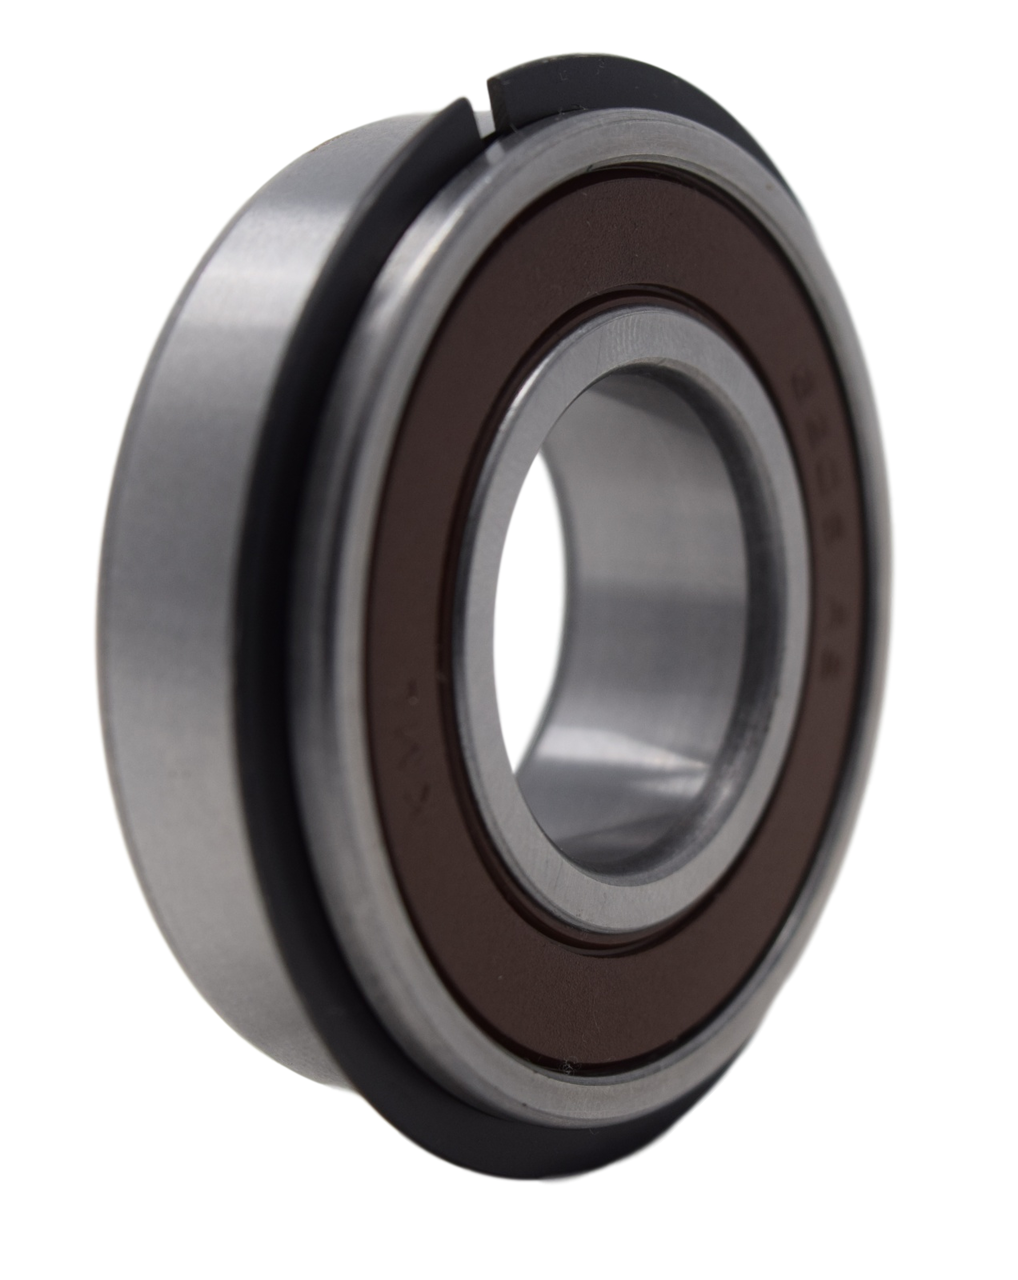 6205-2RSNR Radial Ball Bearing with Snap Ring 25X52X15 Image